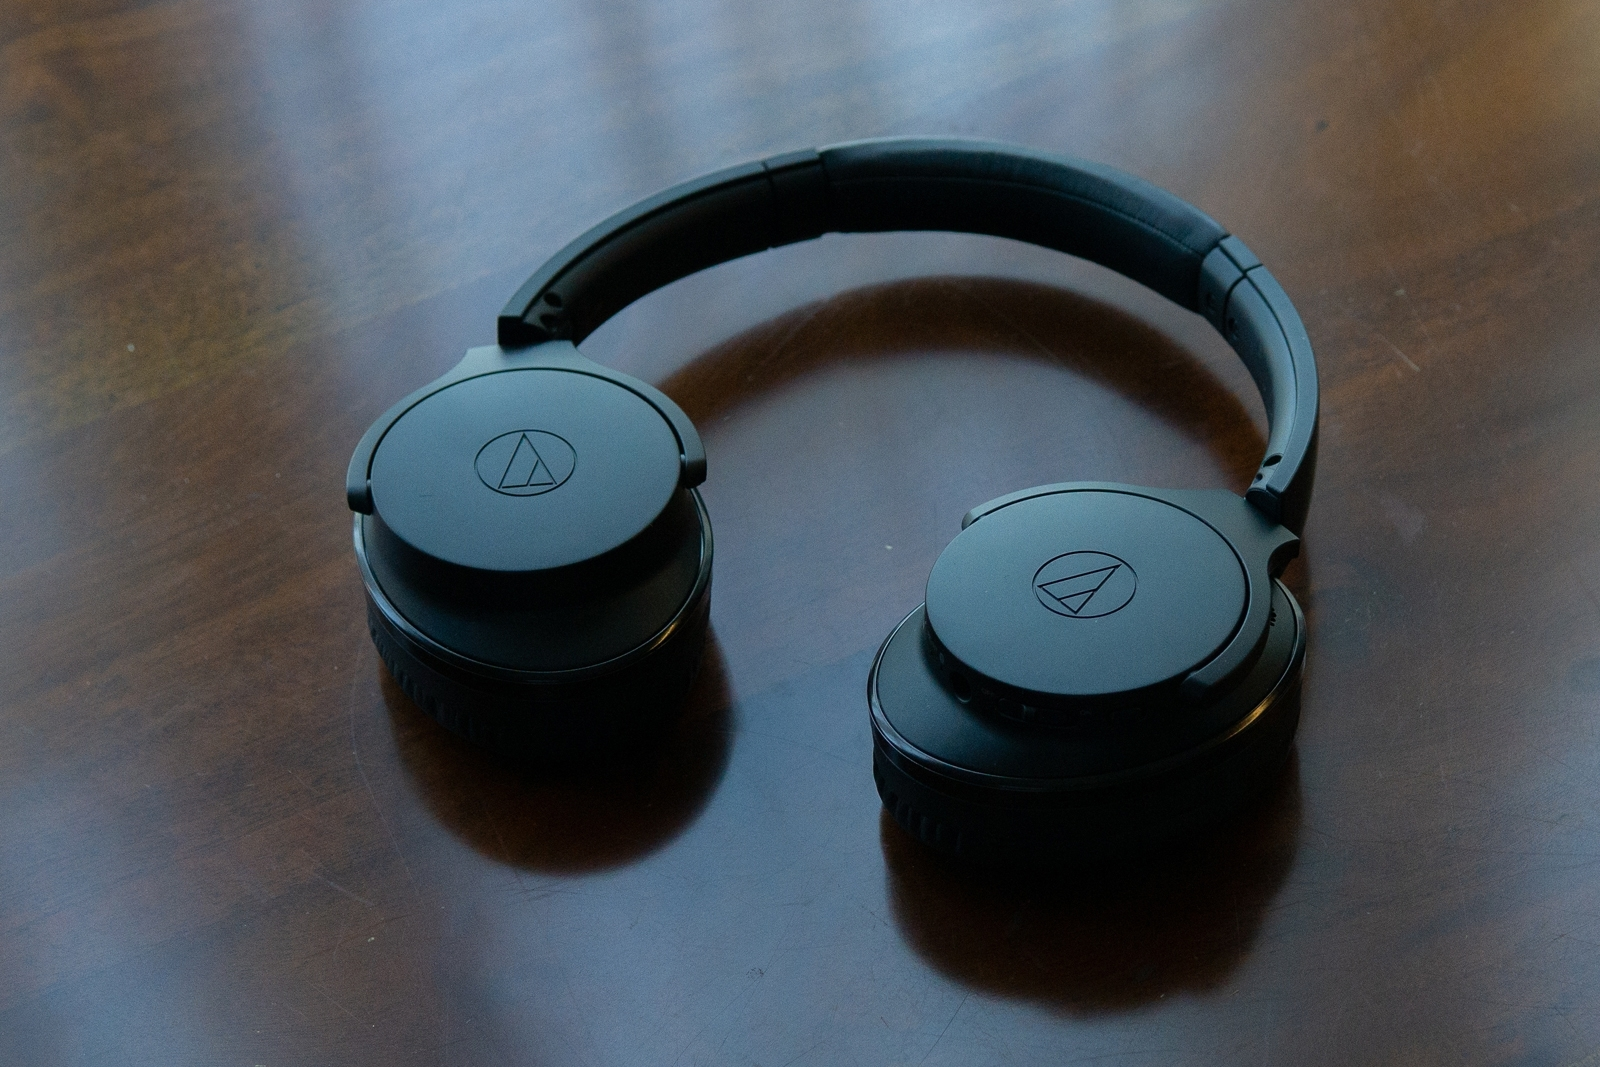 Audio-technica ATH-ANC900BT Noise Cancelling Bluetooth Over